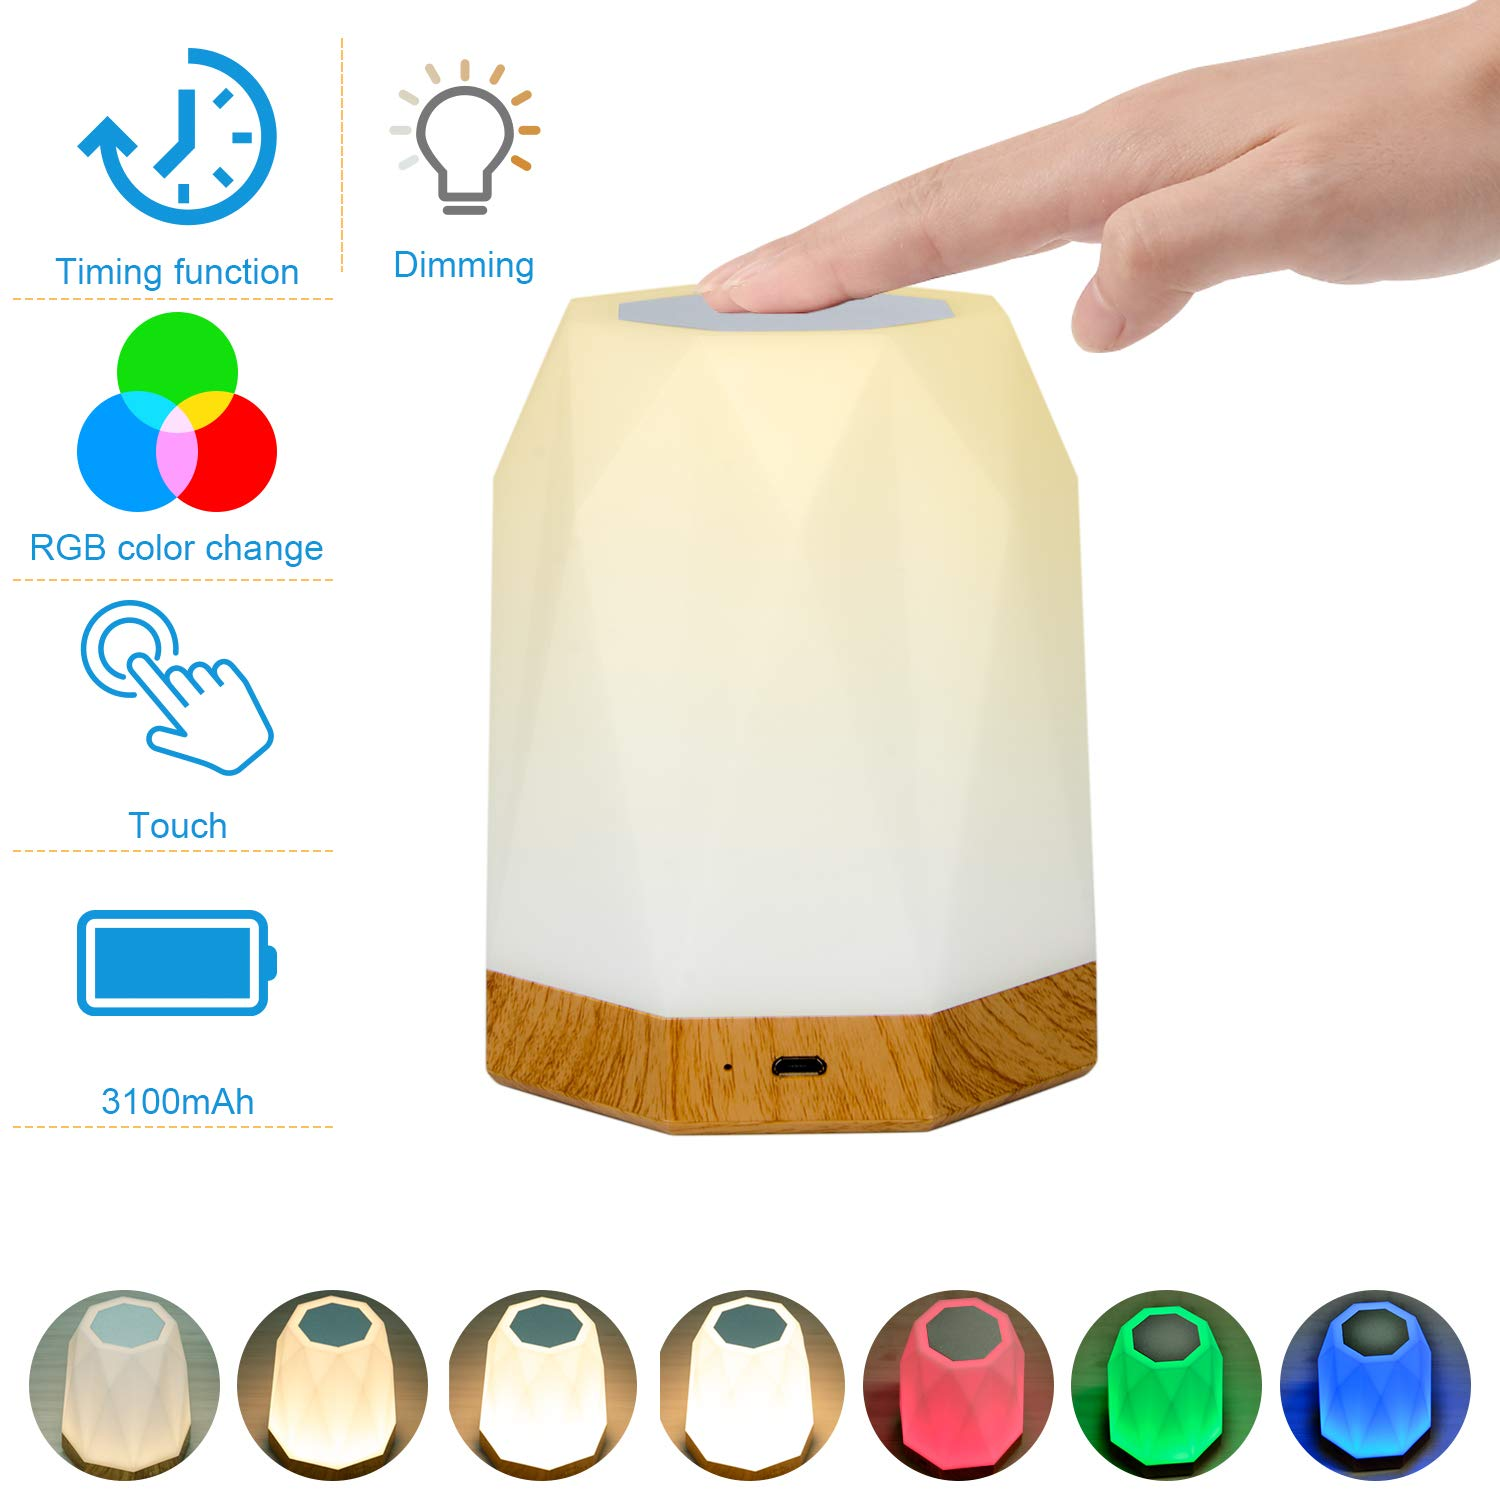 Touch Lamp, KMASHI Touch Bedside Lamp for Bedrooms, LED Rechargeable Portable Night Light with Dimmable 2800K-3100K Warm White Light, Color Changing RGB, Timer Setting